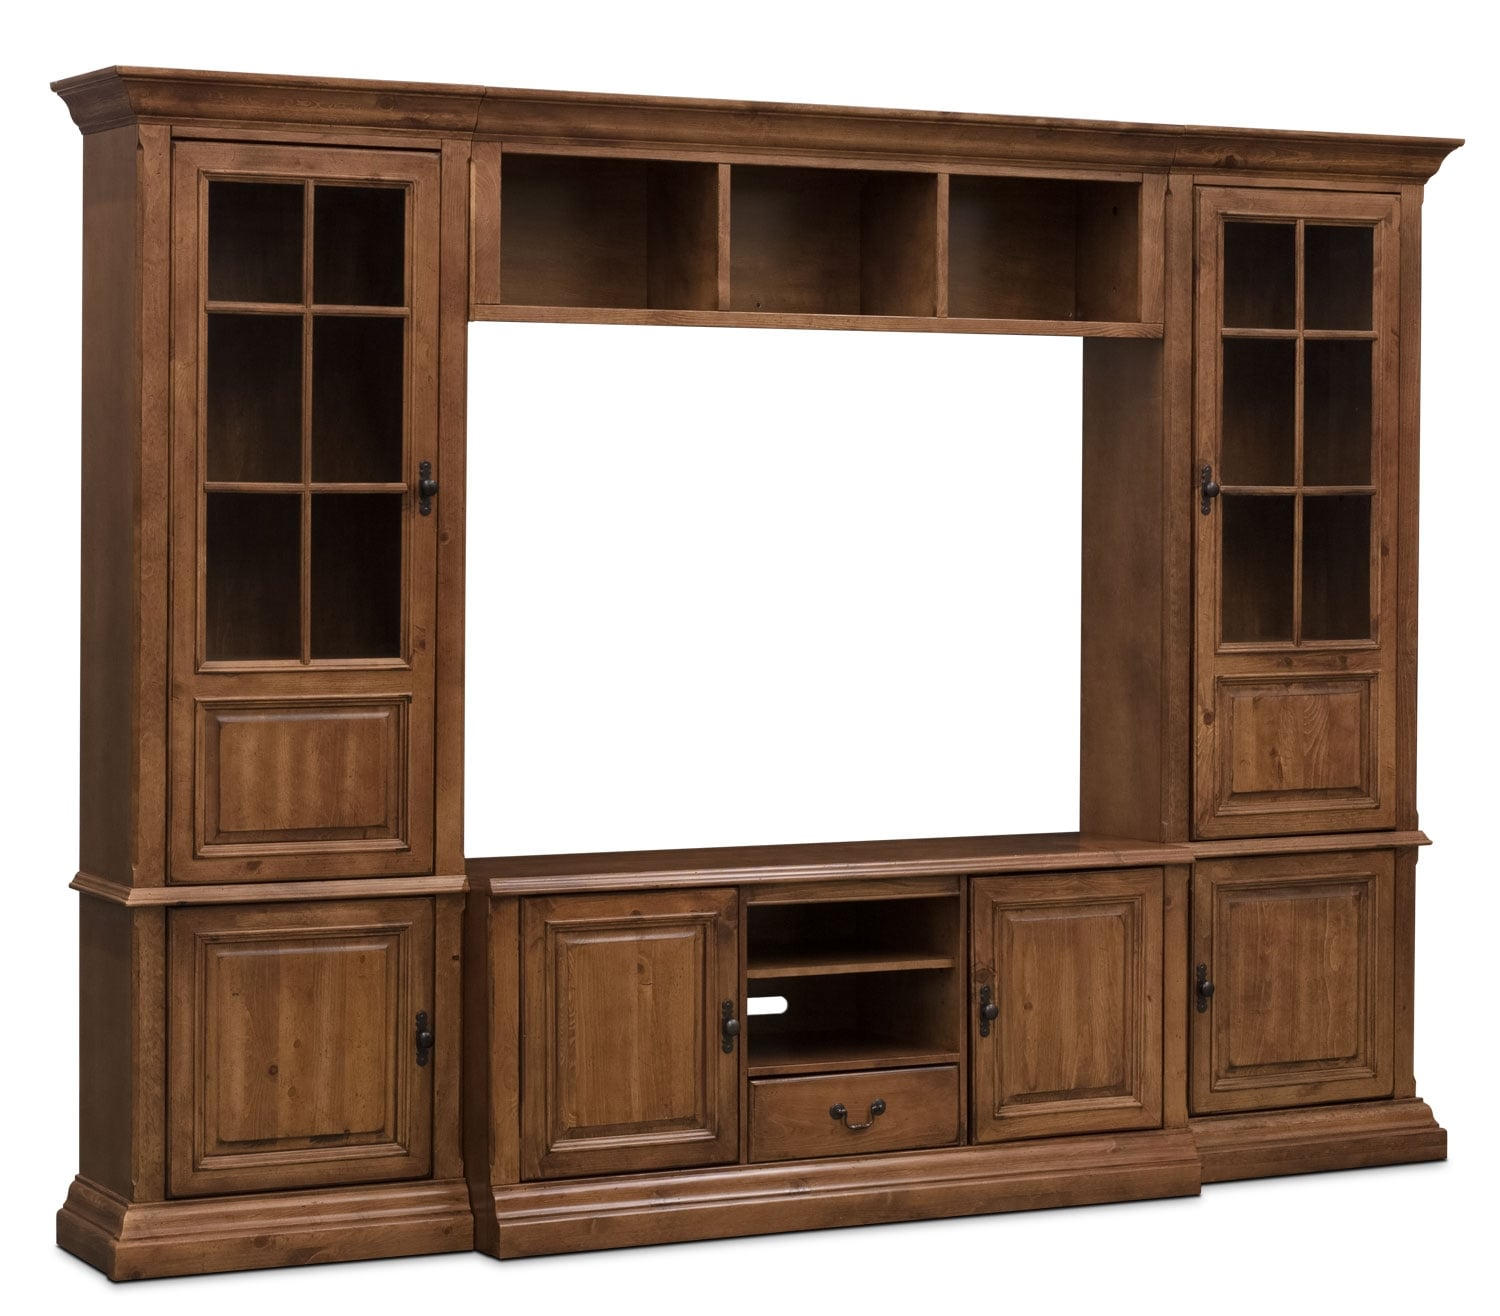 "Edgewood 4-Piece Display Entertainment Centre with 60"" TV Opening"